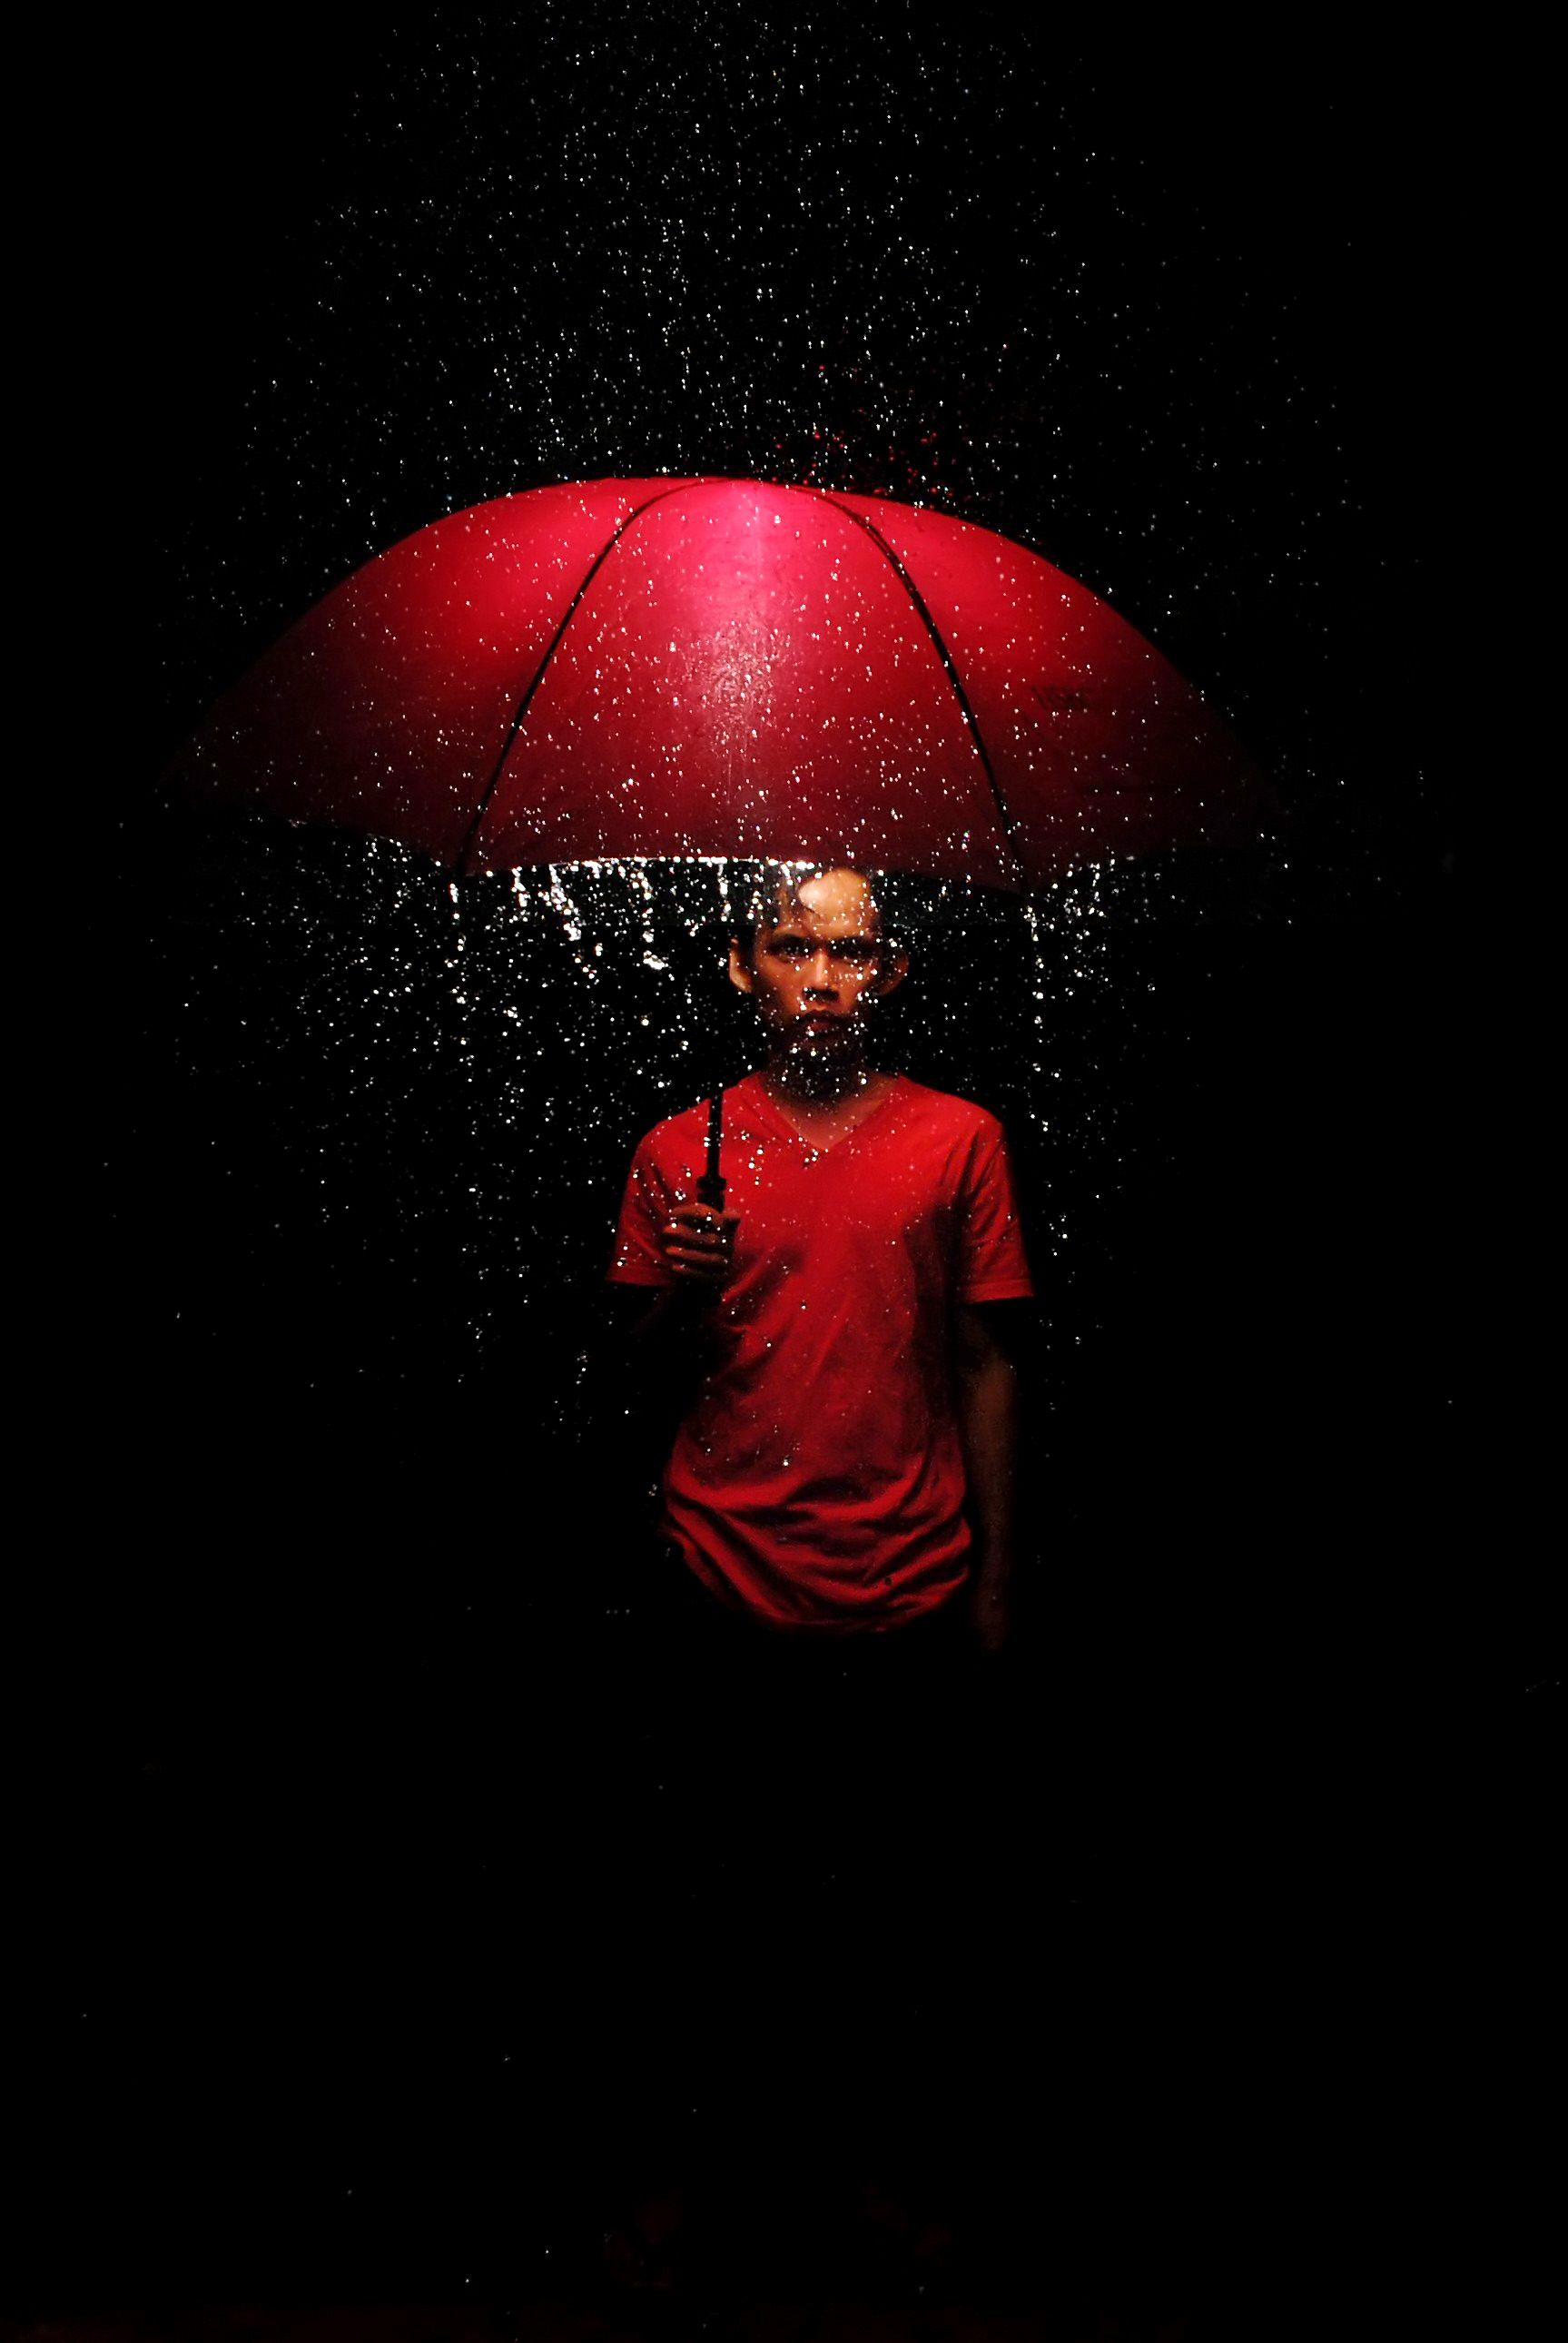 Amazing Lighting For Rain Photography, Red Umbrella